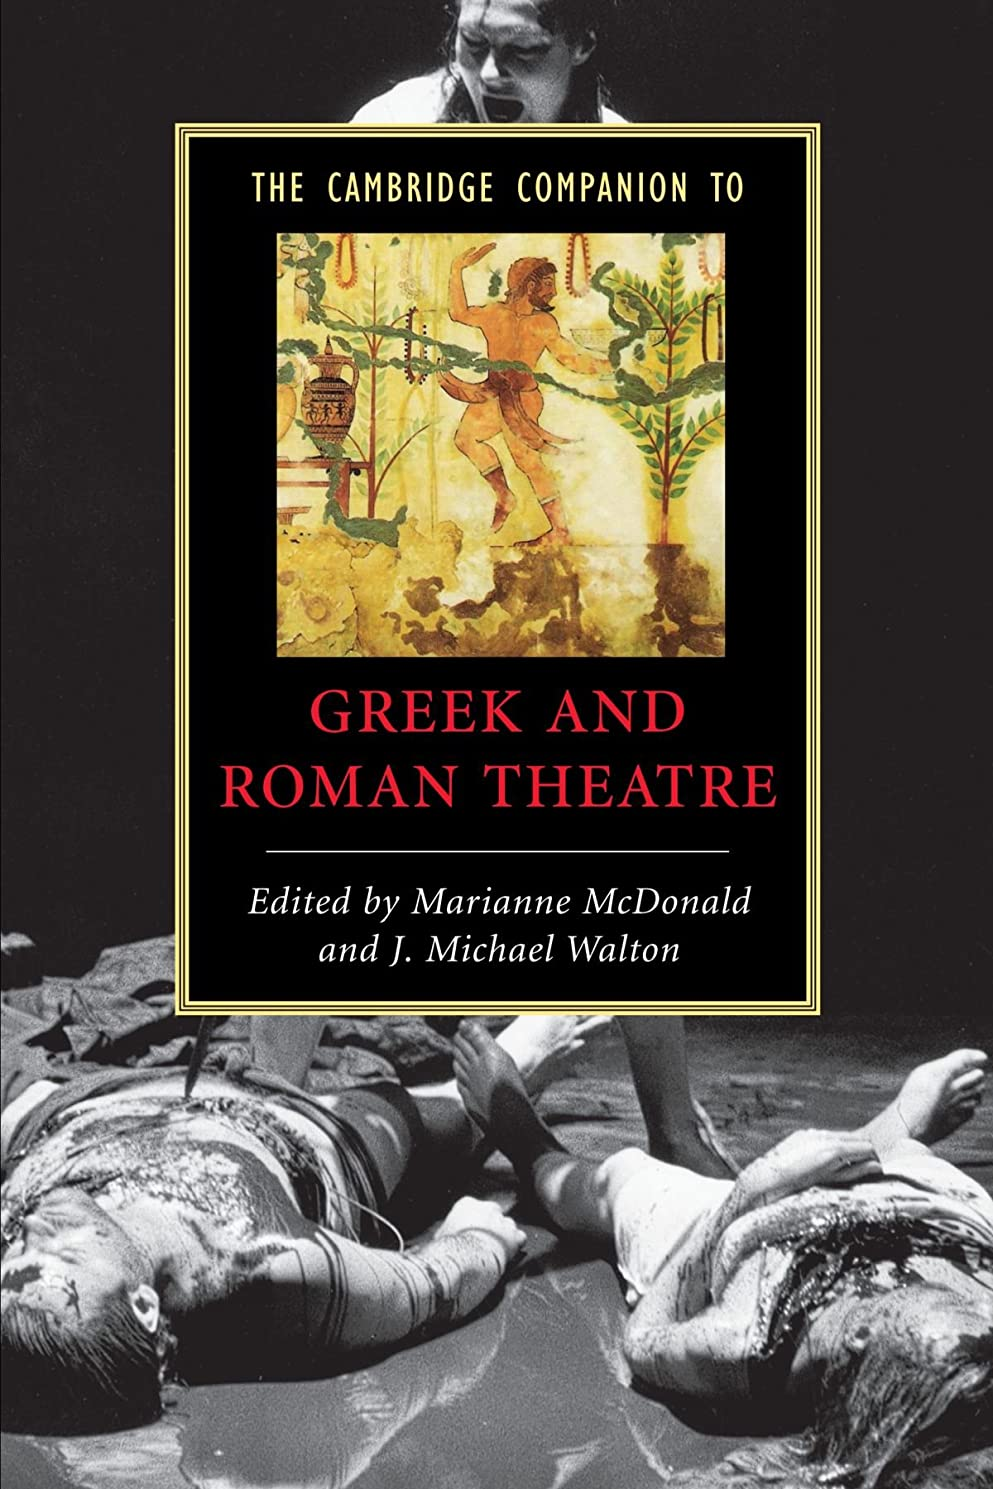 血色の良い横たわるオーナーThe Cambridge Companion to Greek and Roman Theatre (Cambridge Companions to Literature)